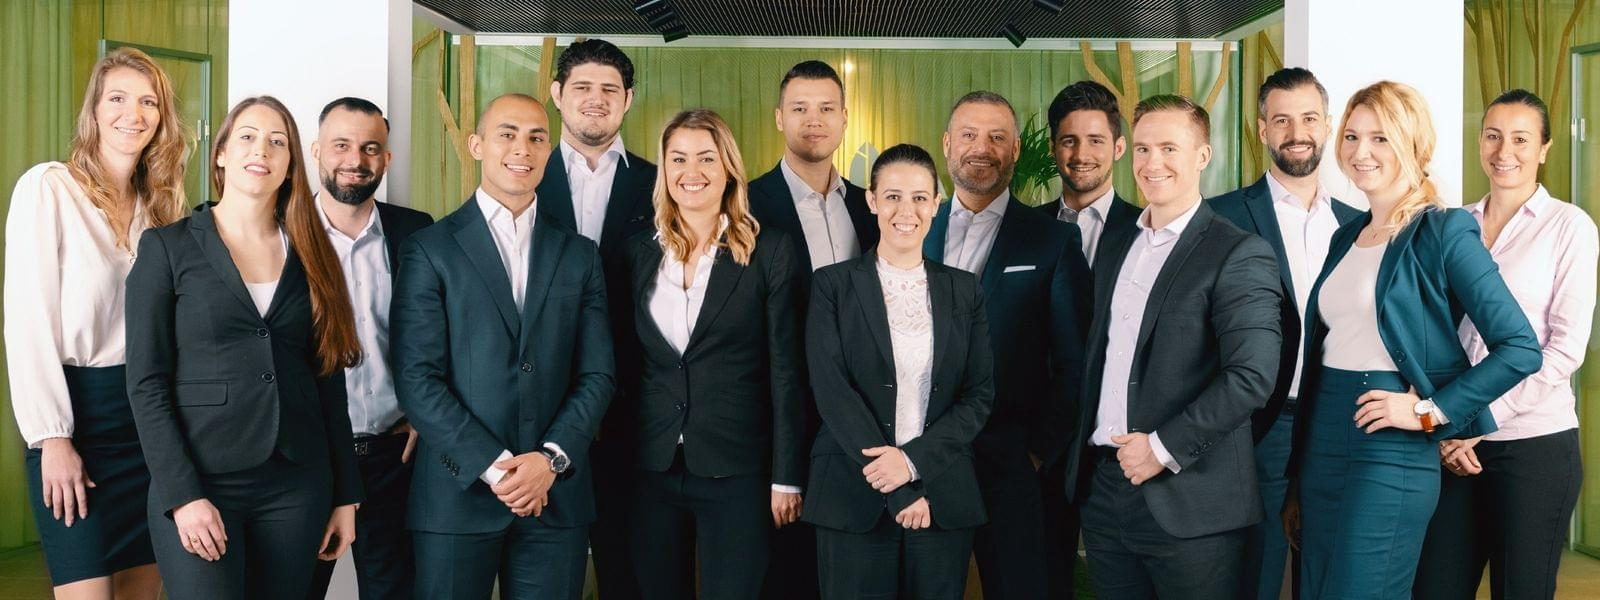 The MoneyPark team